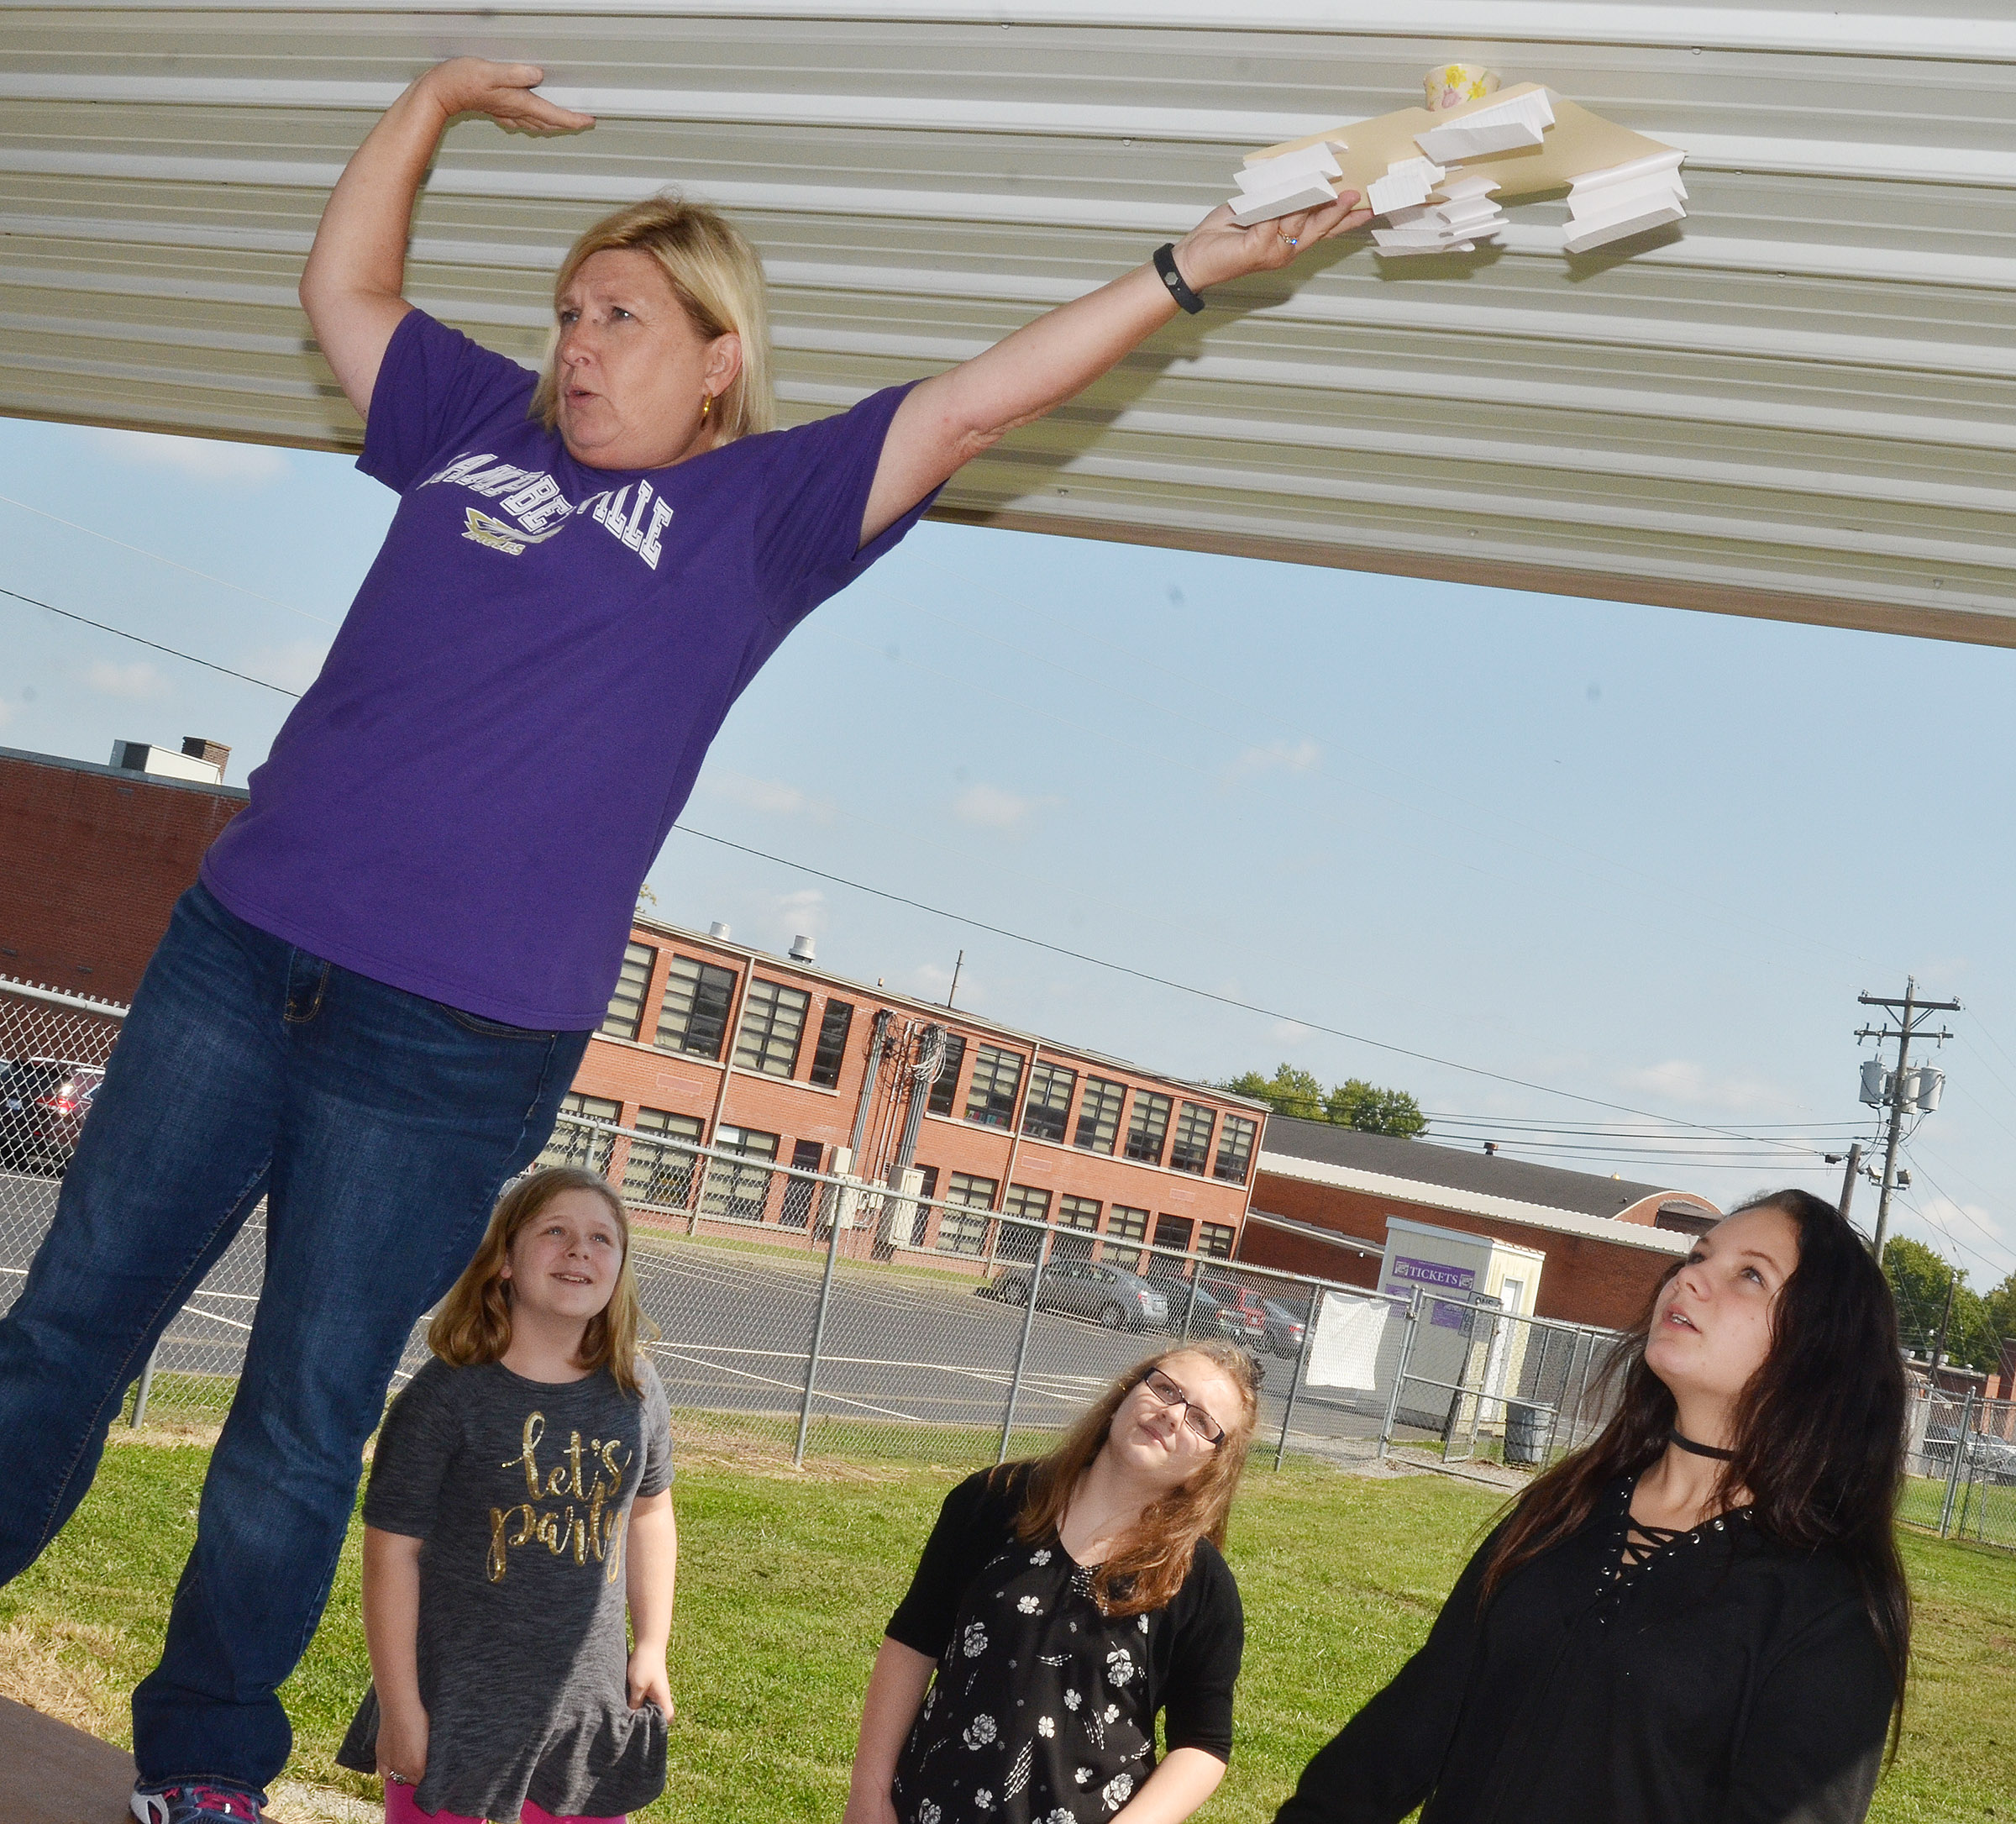 CMS sixth-grade teacher Jan Speer drops a spacecraft, as, from left, Alexis Sharp, Ellington Gowin and Margaret Johnson watch.